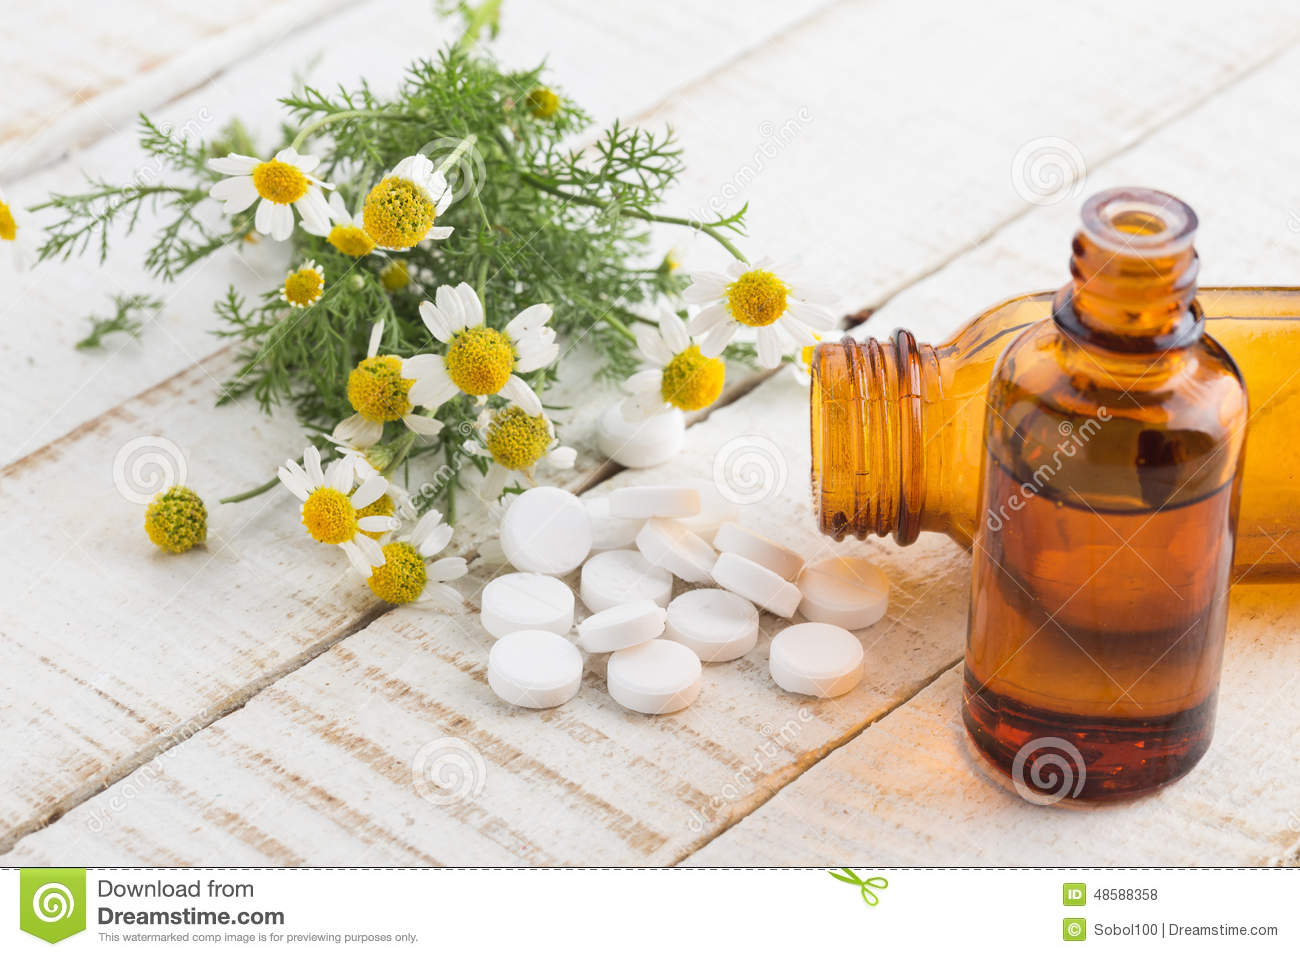 How To Make Natural Chamomile Oil